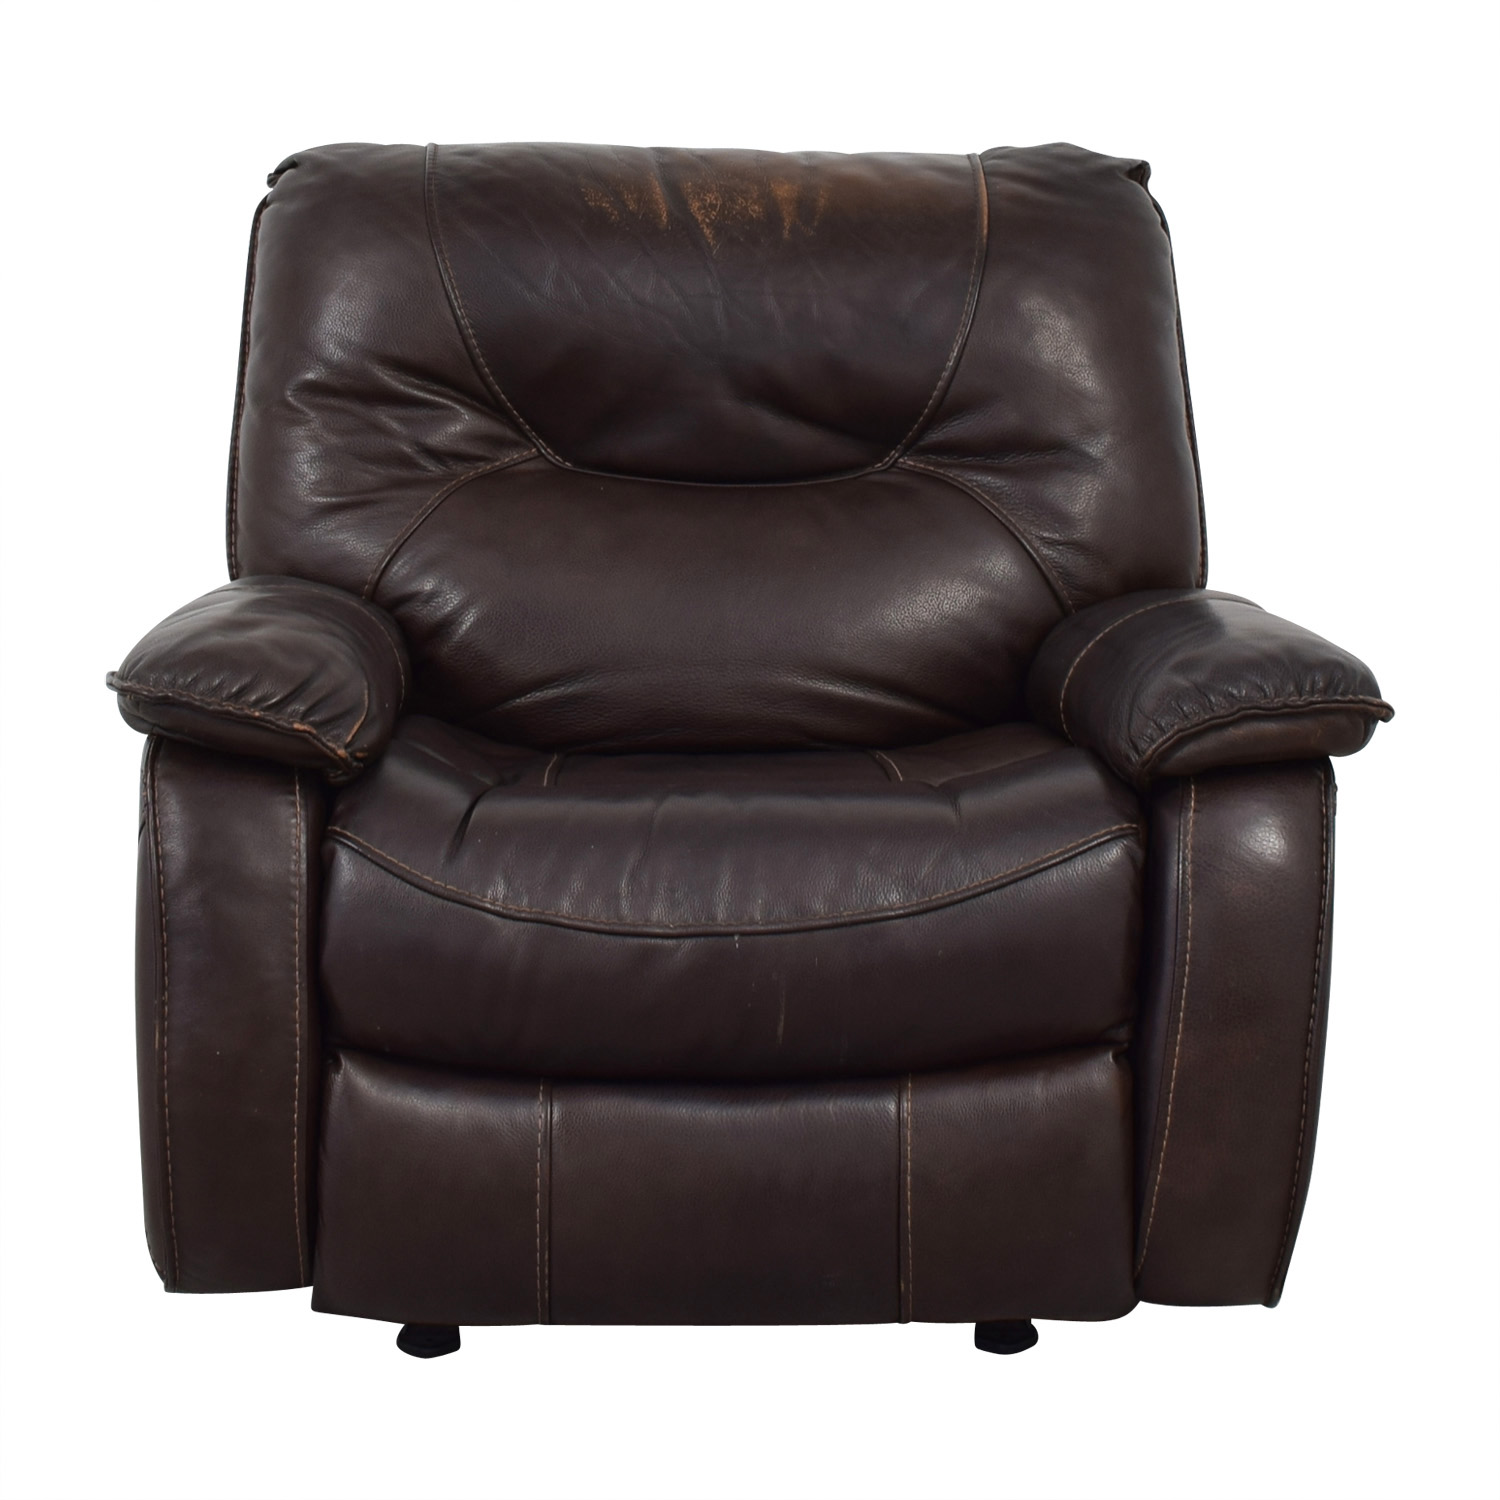 Macy's Macy's Brown Leather Recliner Chair price